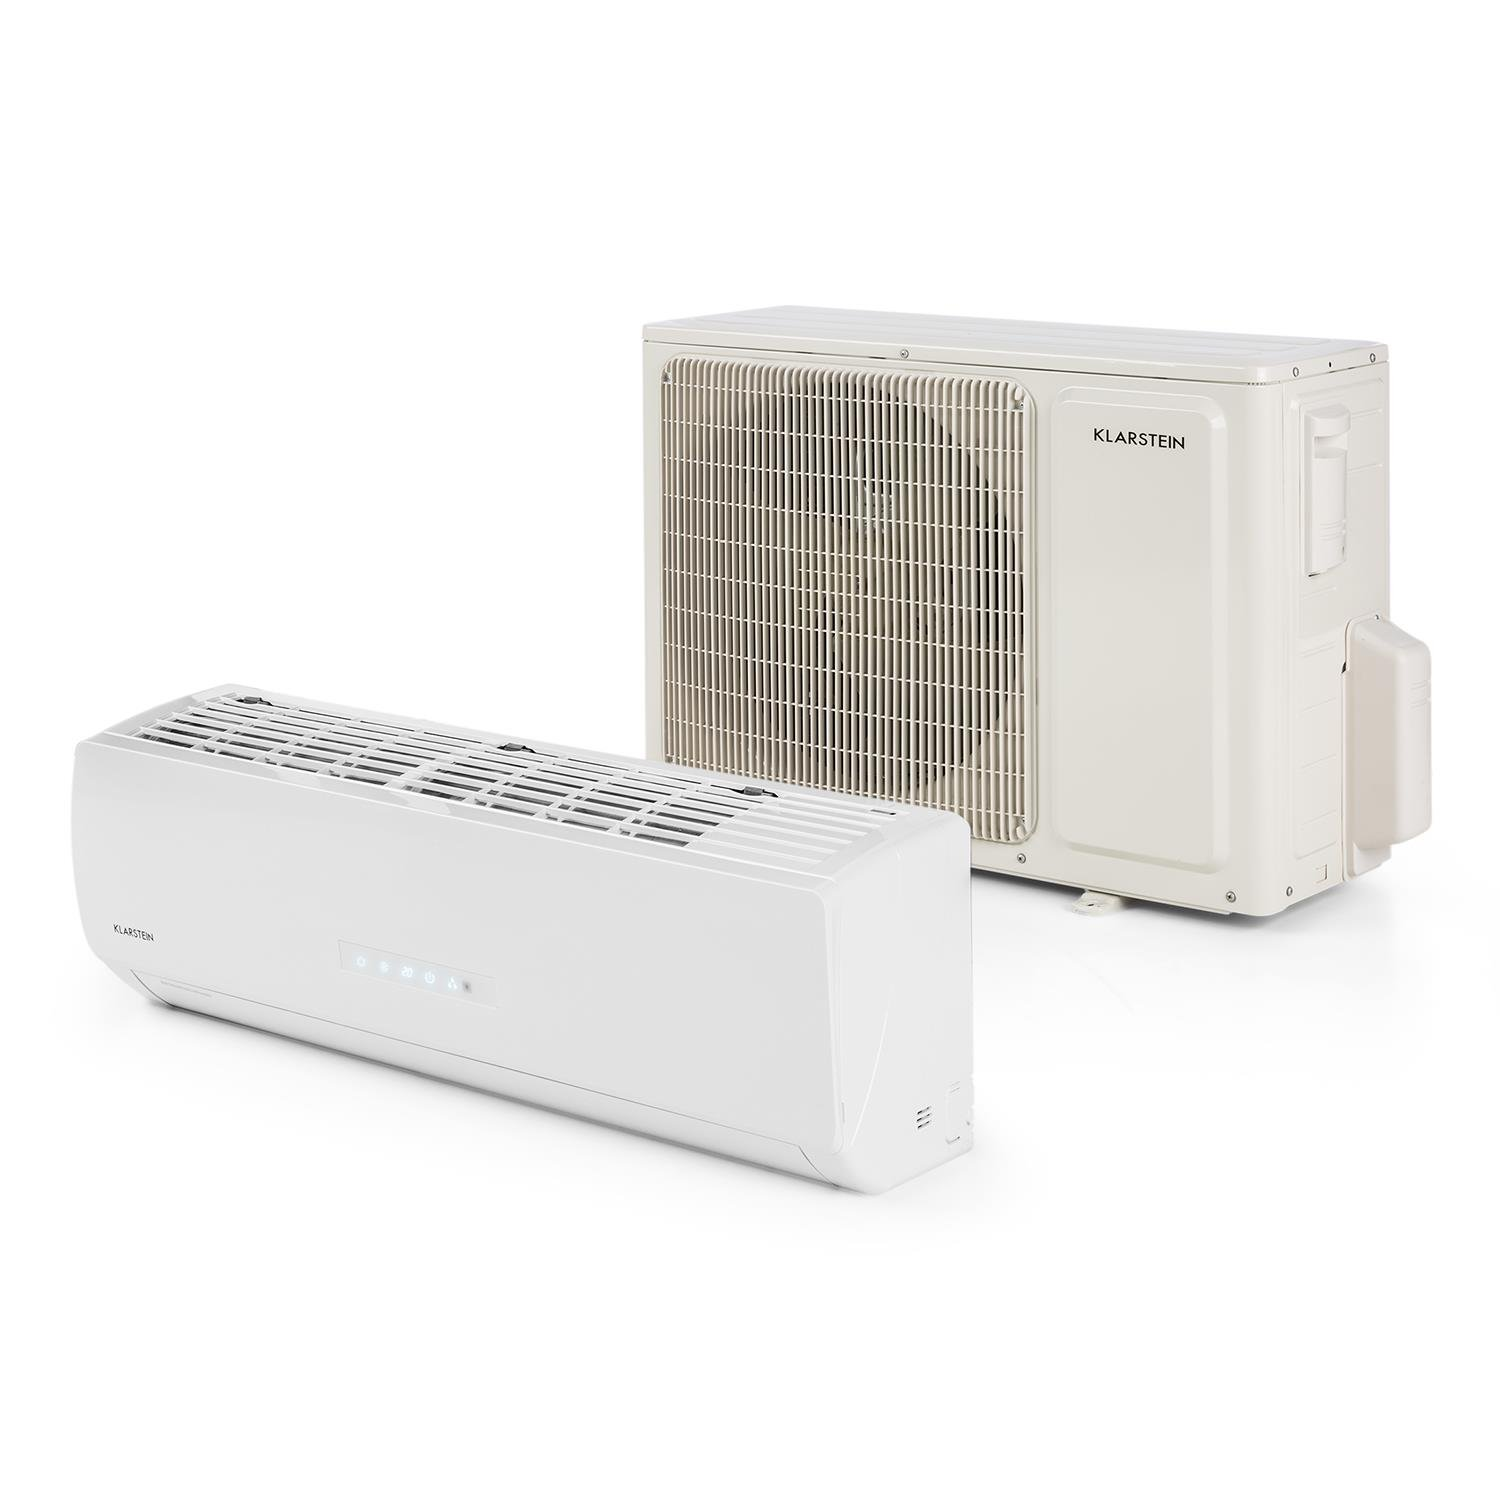 Klarstein Windwaker Supreme 9000 Inverter Split Air Conditioner - 9000BTU, 2.6/2.8 kW RC, Cooling and Heating Function, Class A+++, Remote Control, 5 Modes of Operation, White